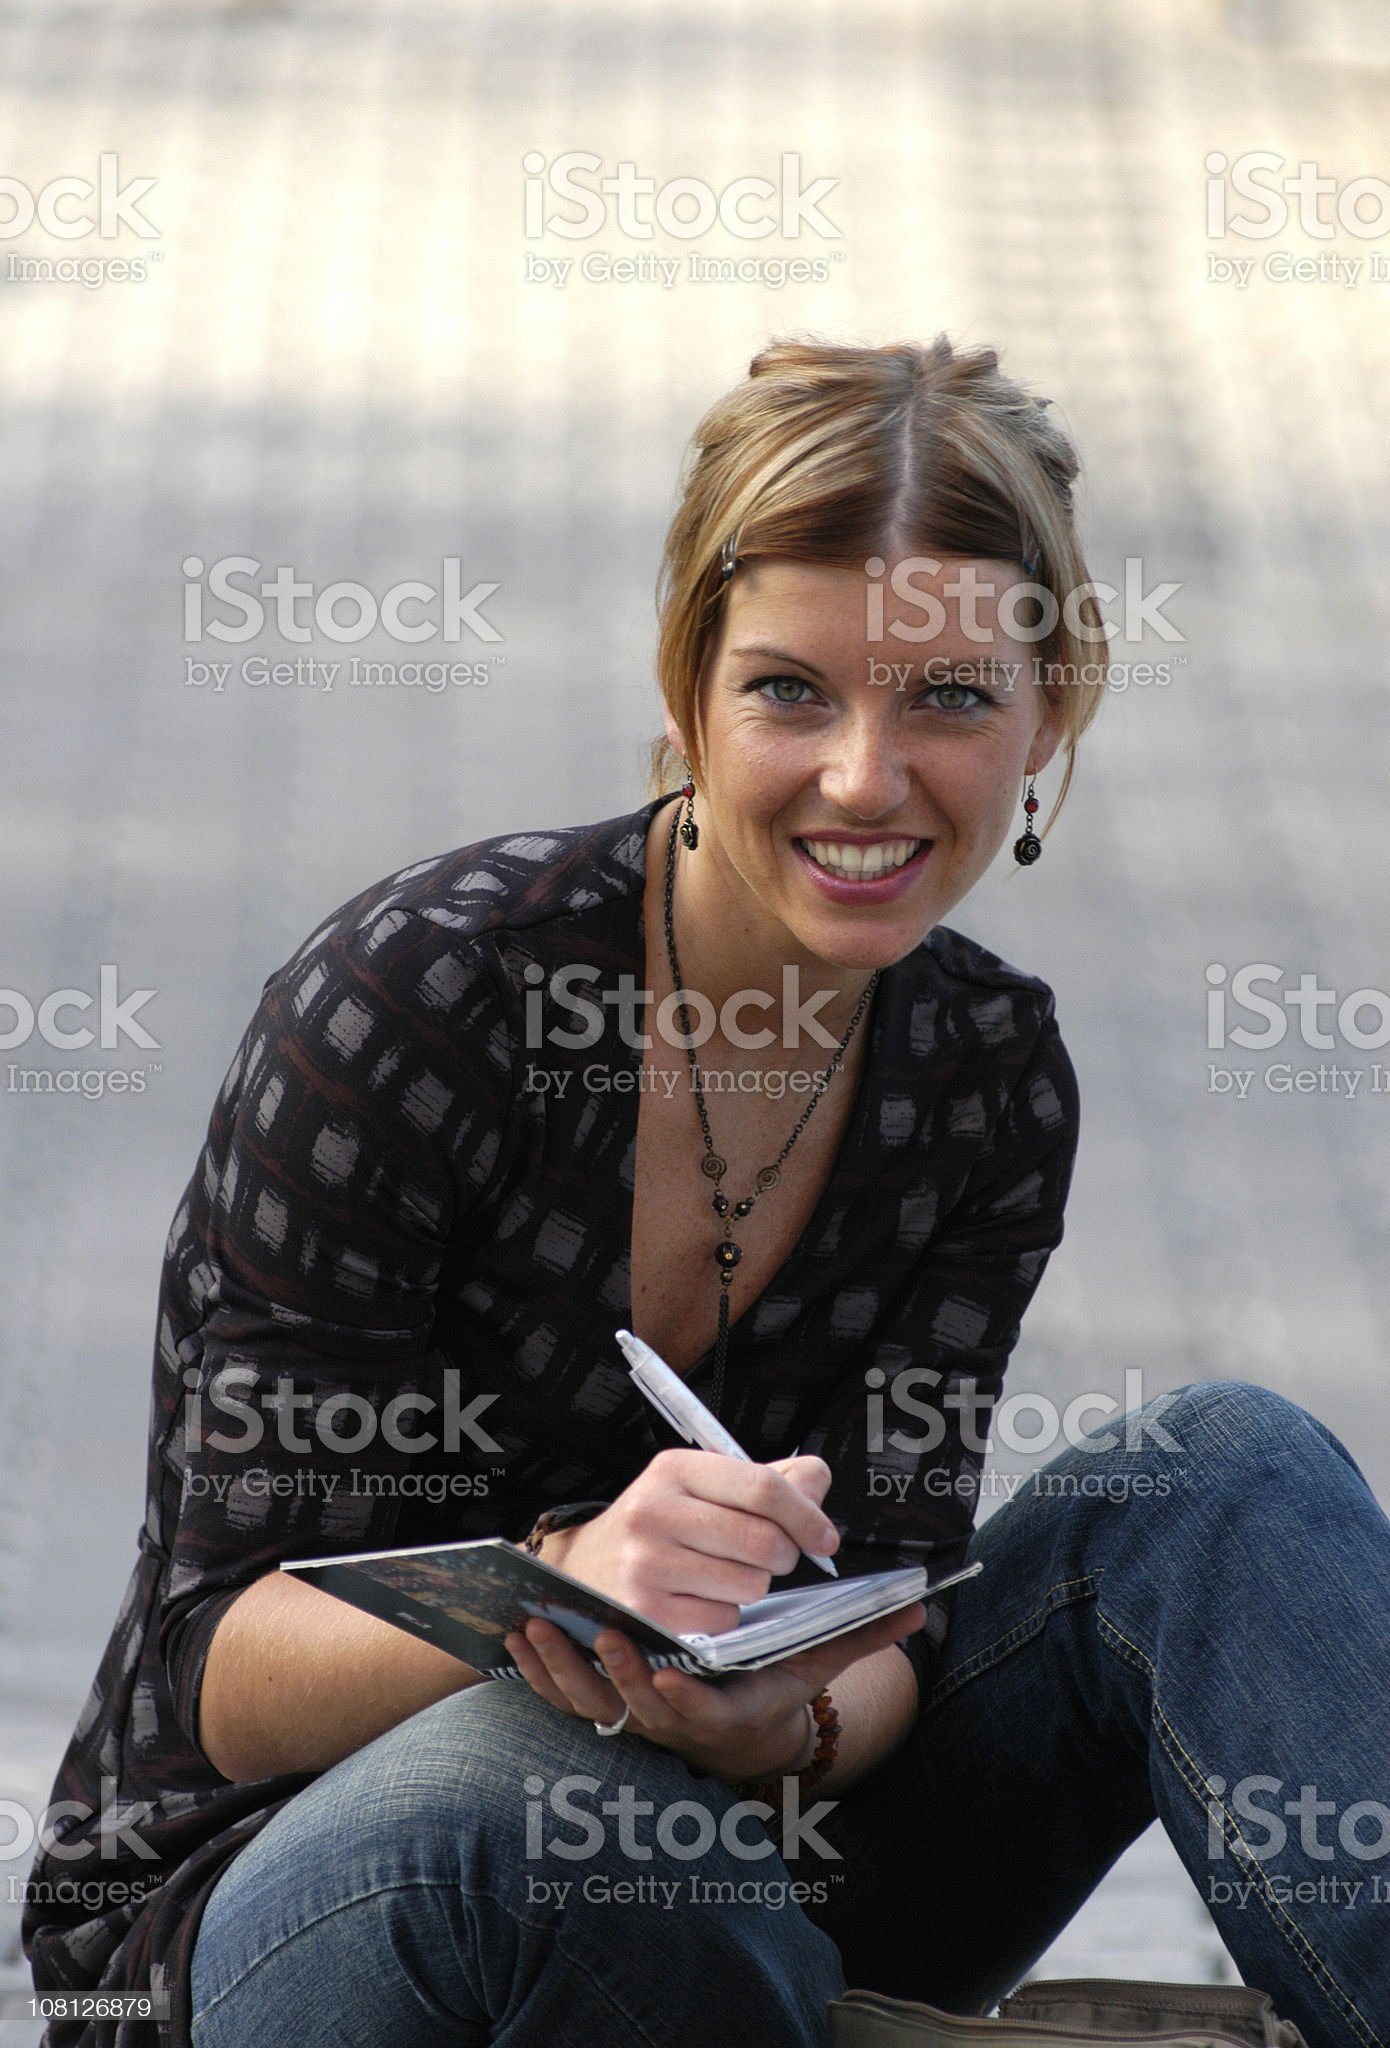 Young Woman Sitting Outside and Writing in Book royalty-free stock photo